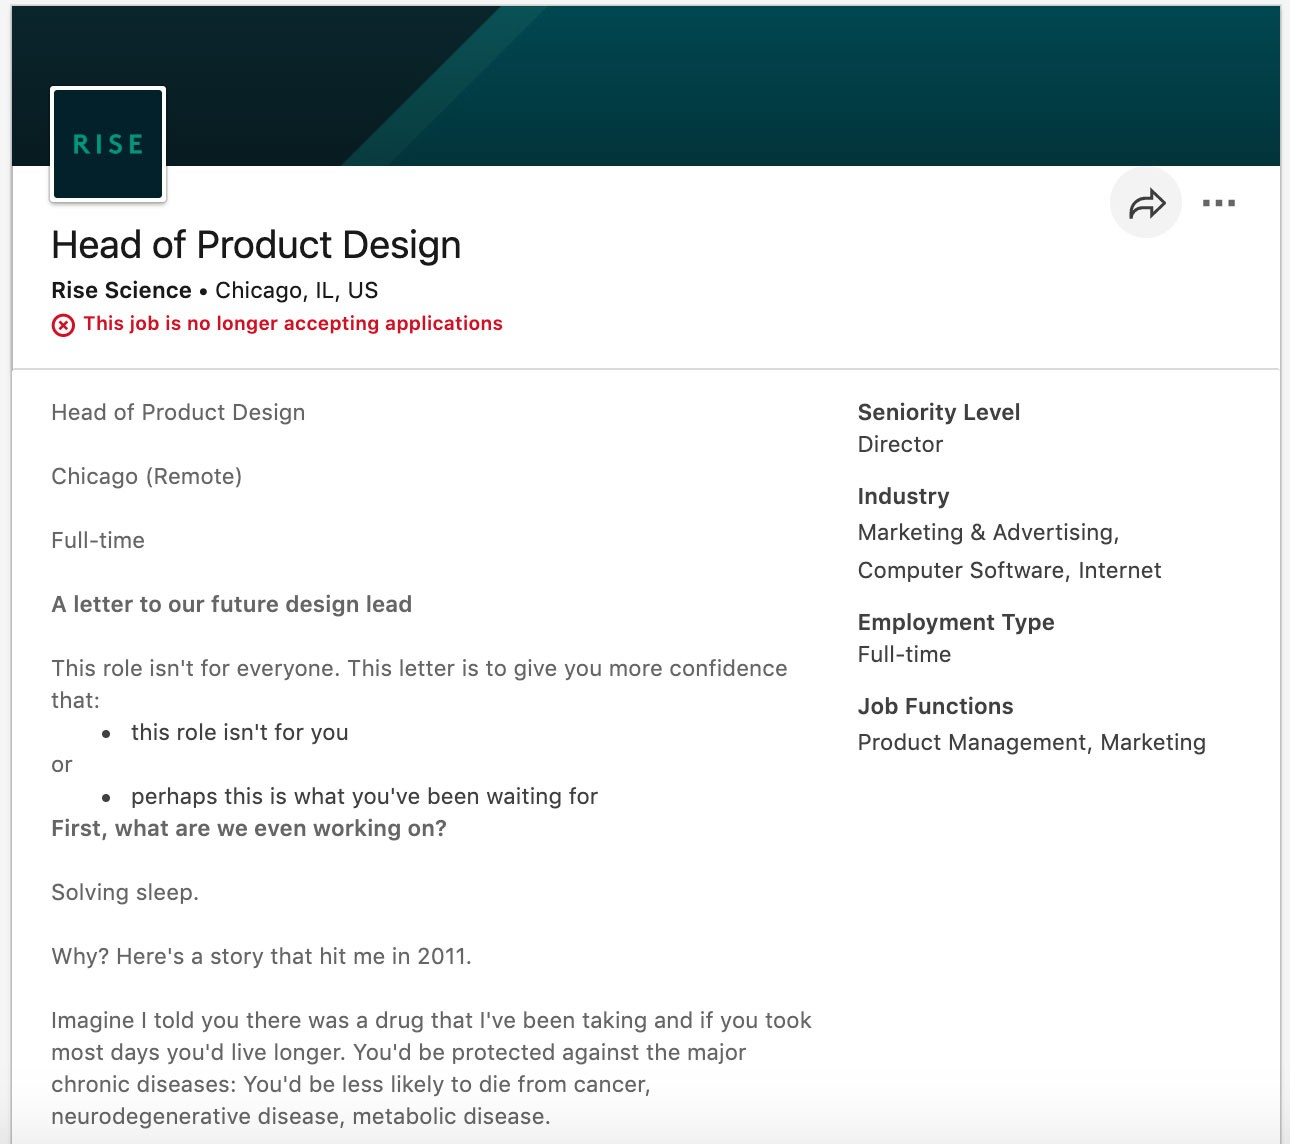 Screenshot of portion of Rise Science's job description for Head of Product Design role.